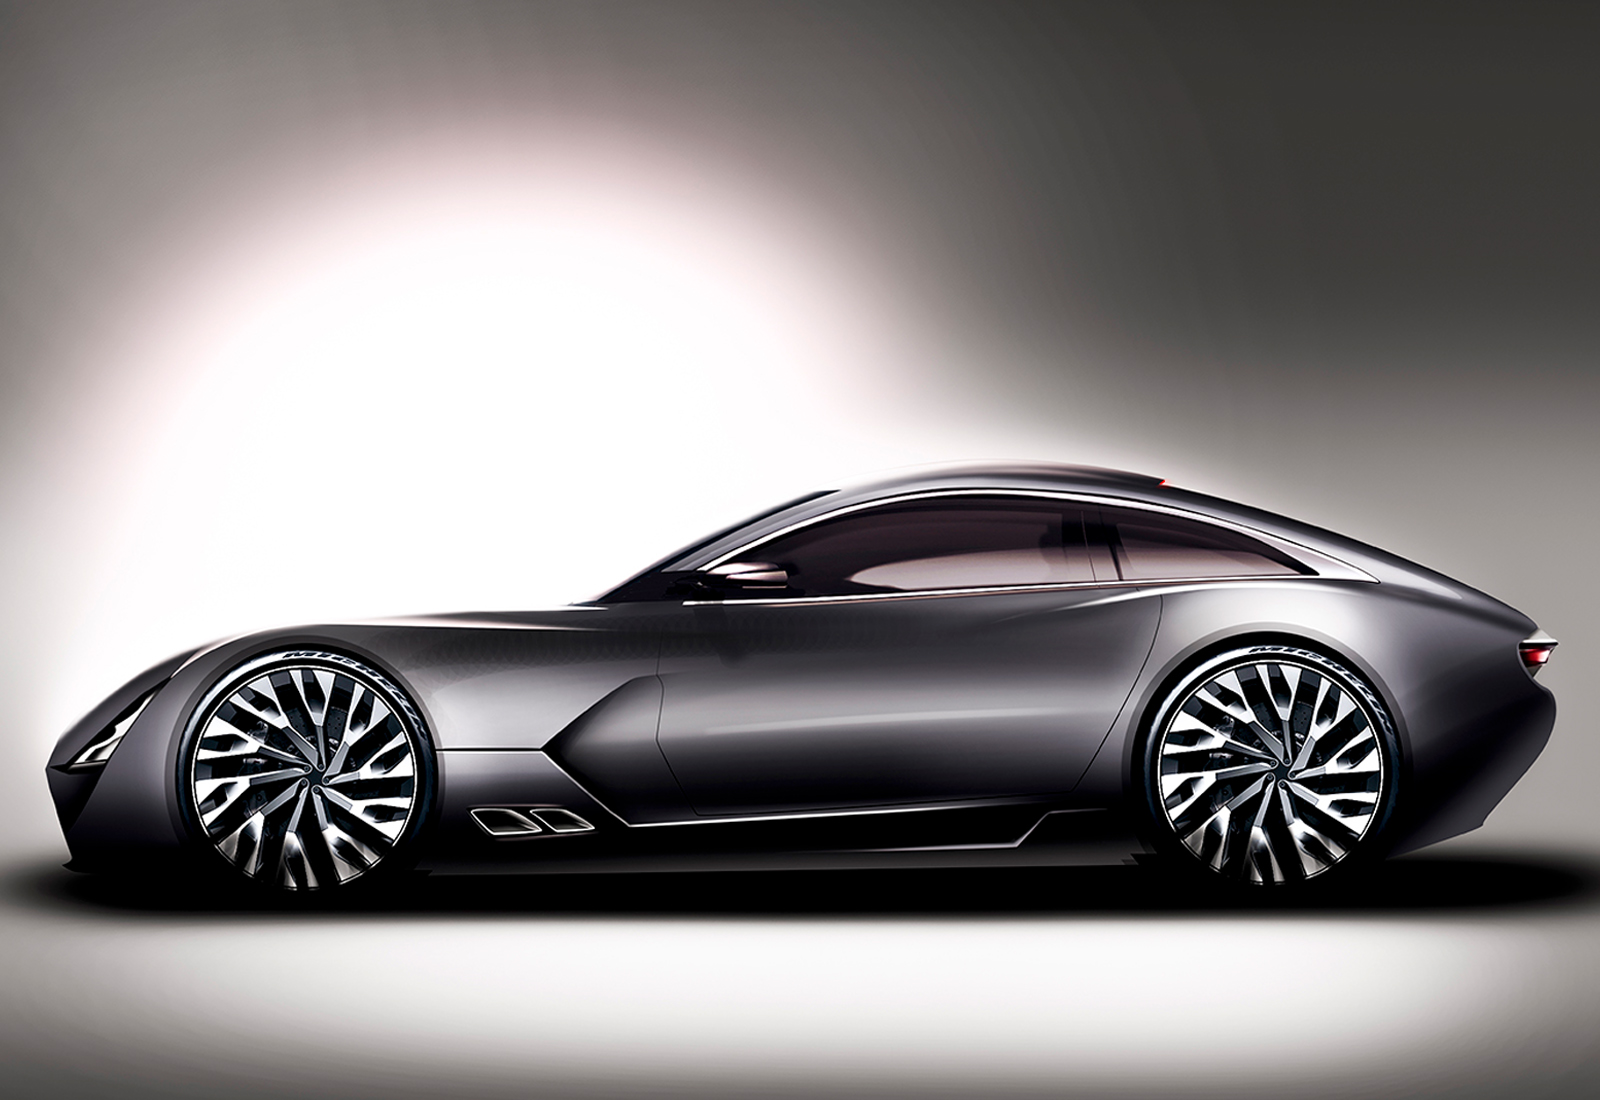 Tvr Confirms Carbon Fiber Specification For New Sports Car